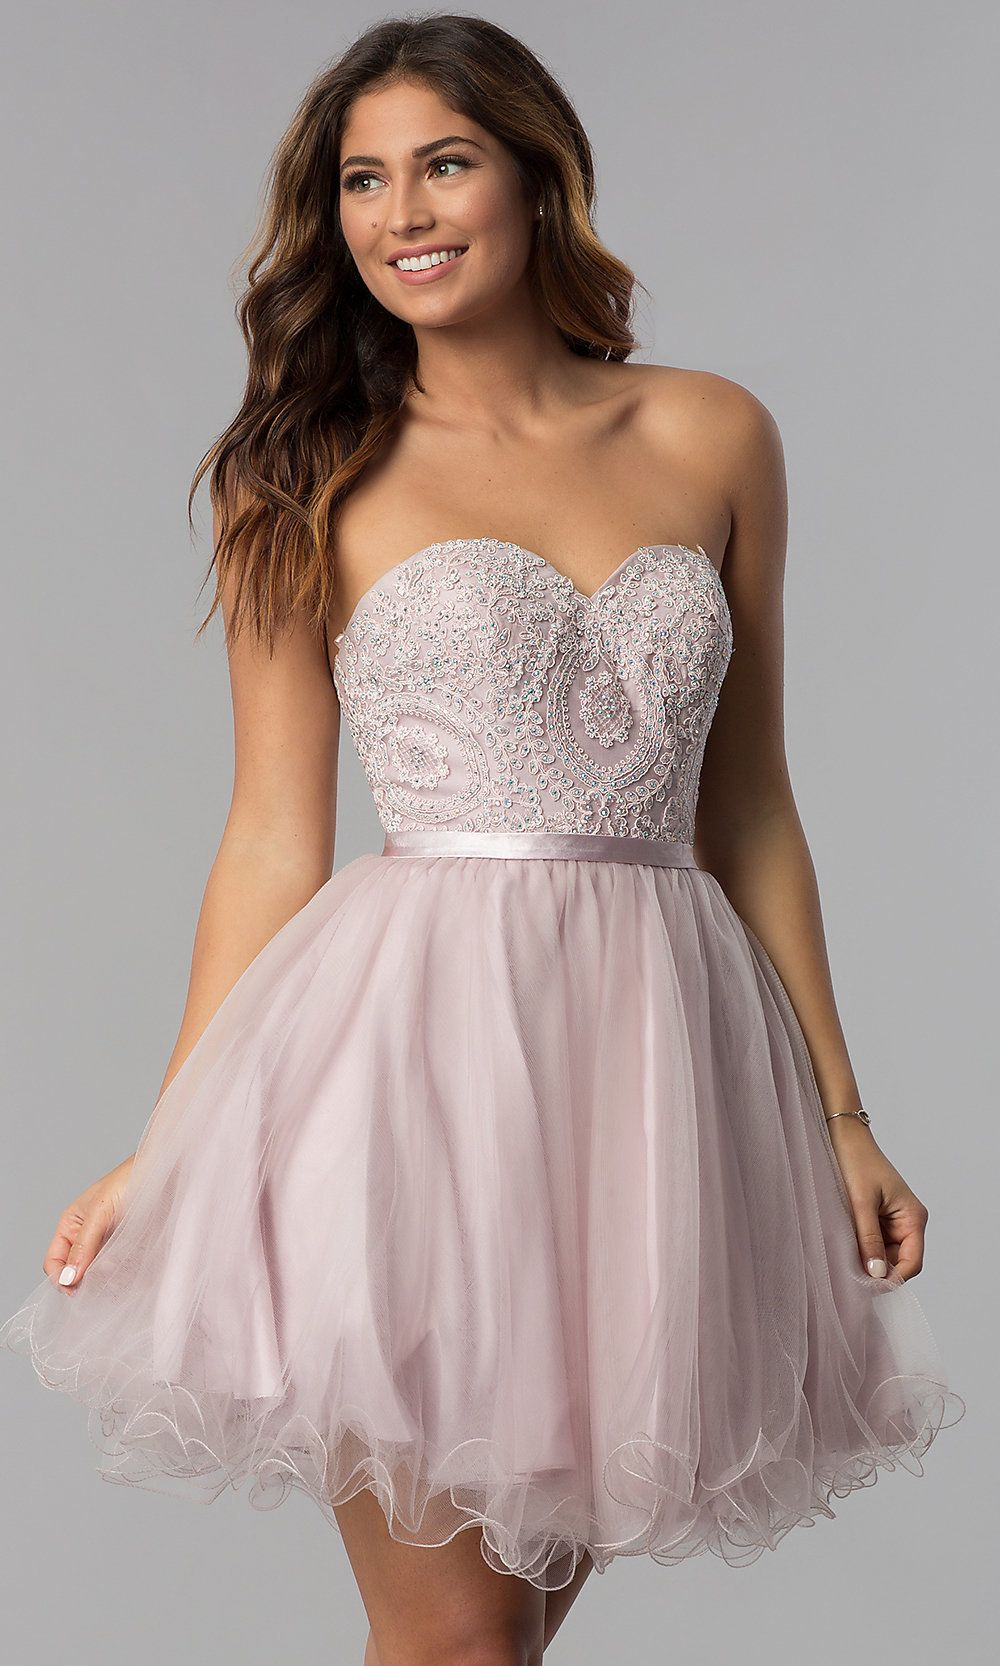 Dusty Pink Short Strapless Sweetheart Hoco Dress Tulle Dress Short Pink Dress Short Short Strapless Prom Dresses [ 1666 x 1000 Pixel ]